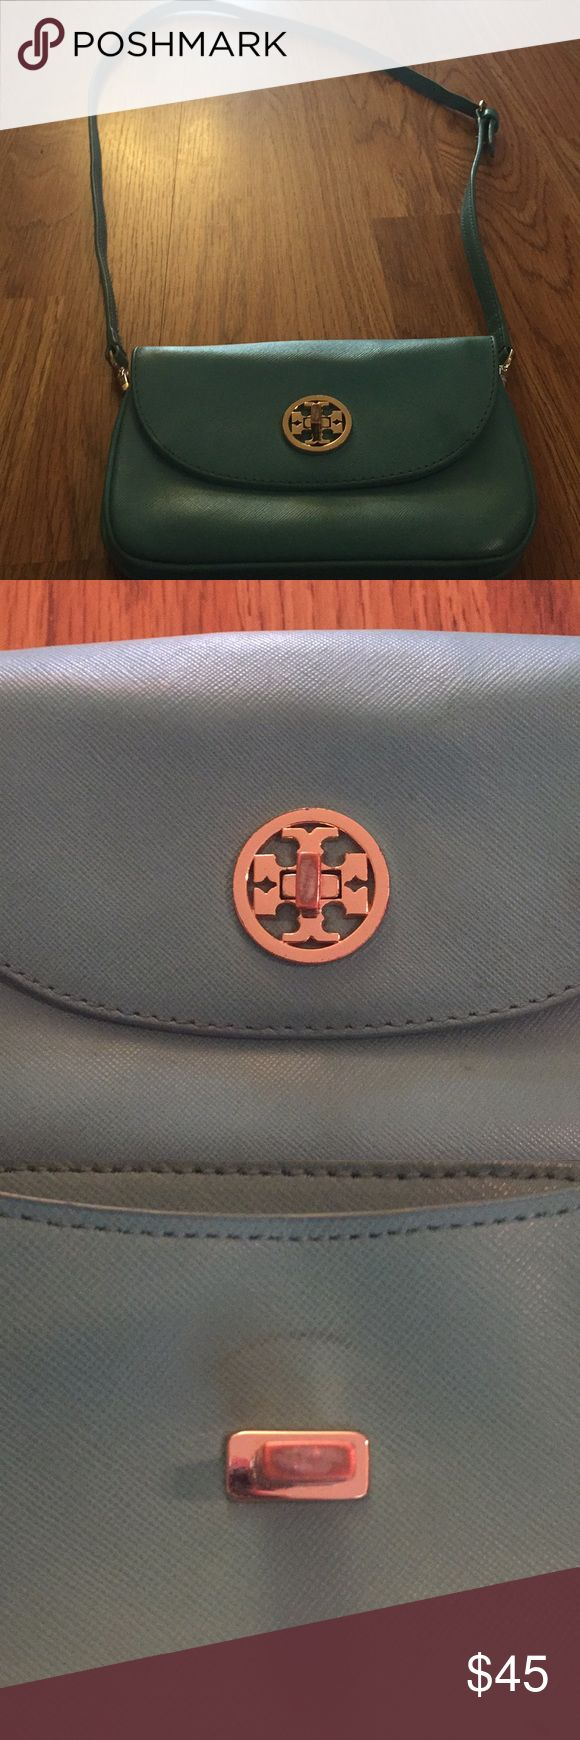 Tory Burch Mini Robinson in Mint green used cond This is a trendy Mint Green Tory Burch purse. It is the mini Robinson style. It is in used condition, I tried to get pictures of the flaws. It is being re-pushed as my Tory wallet won't fit well. It will fit a small card holder, cell phone and maybe some lip gloss. I tried to get pictures of the measurements so you can tell how long the strap is. It is supposed to be cross body, but it didn't fit my torso as a cross body. Great price for a…